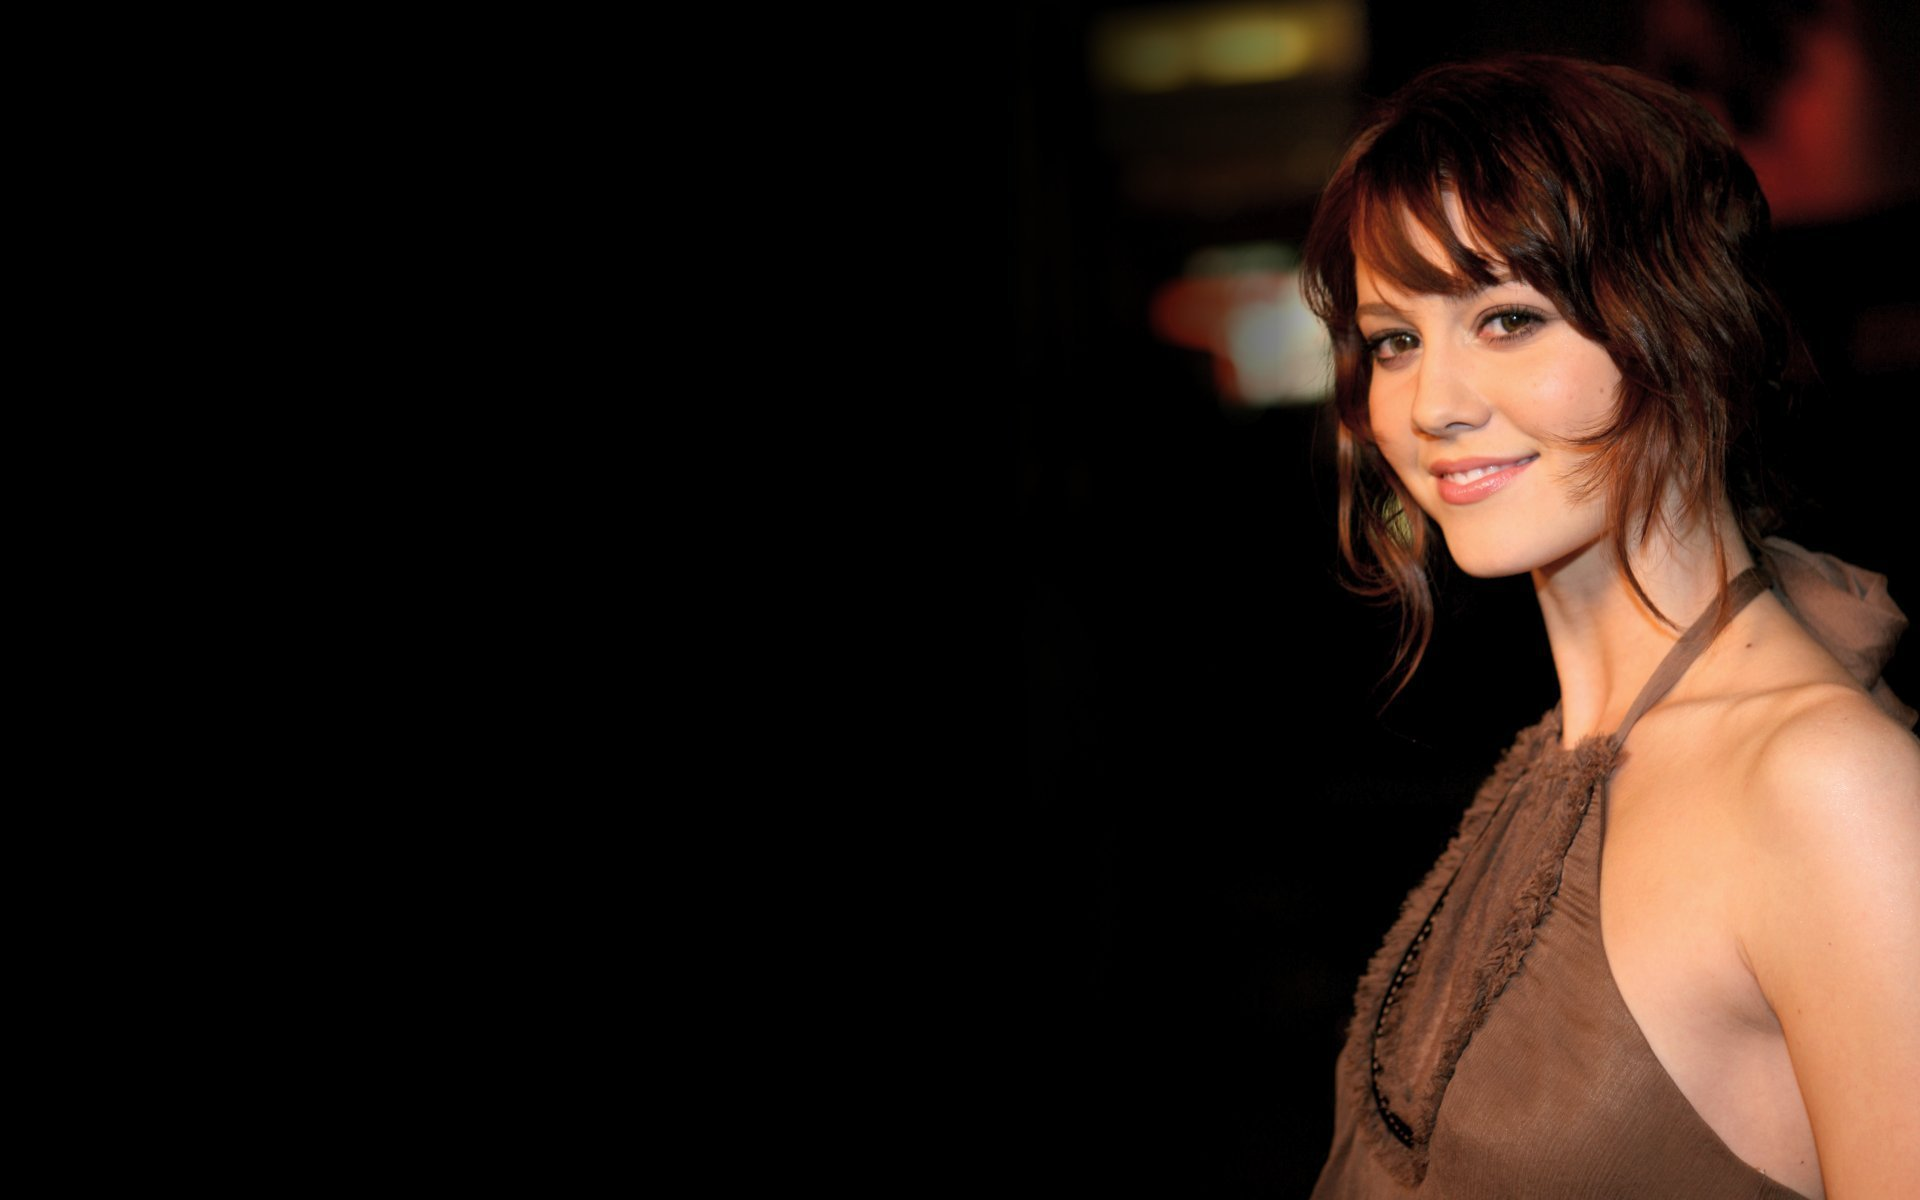 mary elizabeth winstead images mary elizabeth winstead widescreen